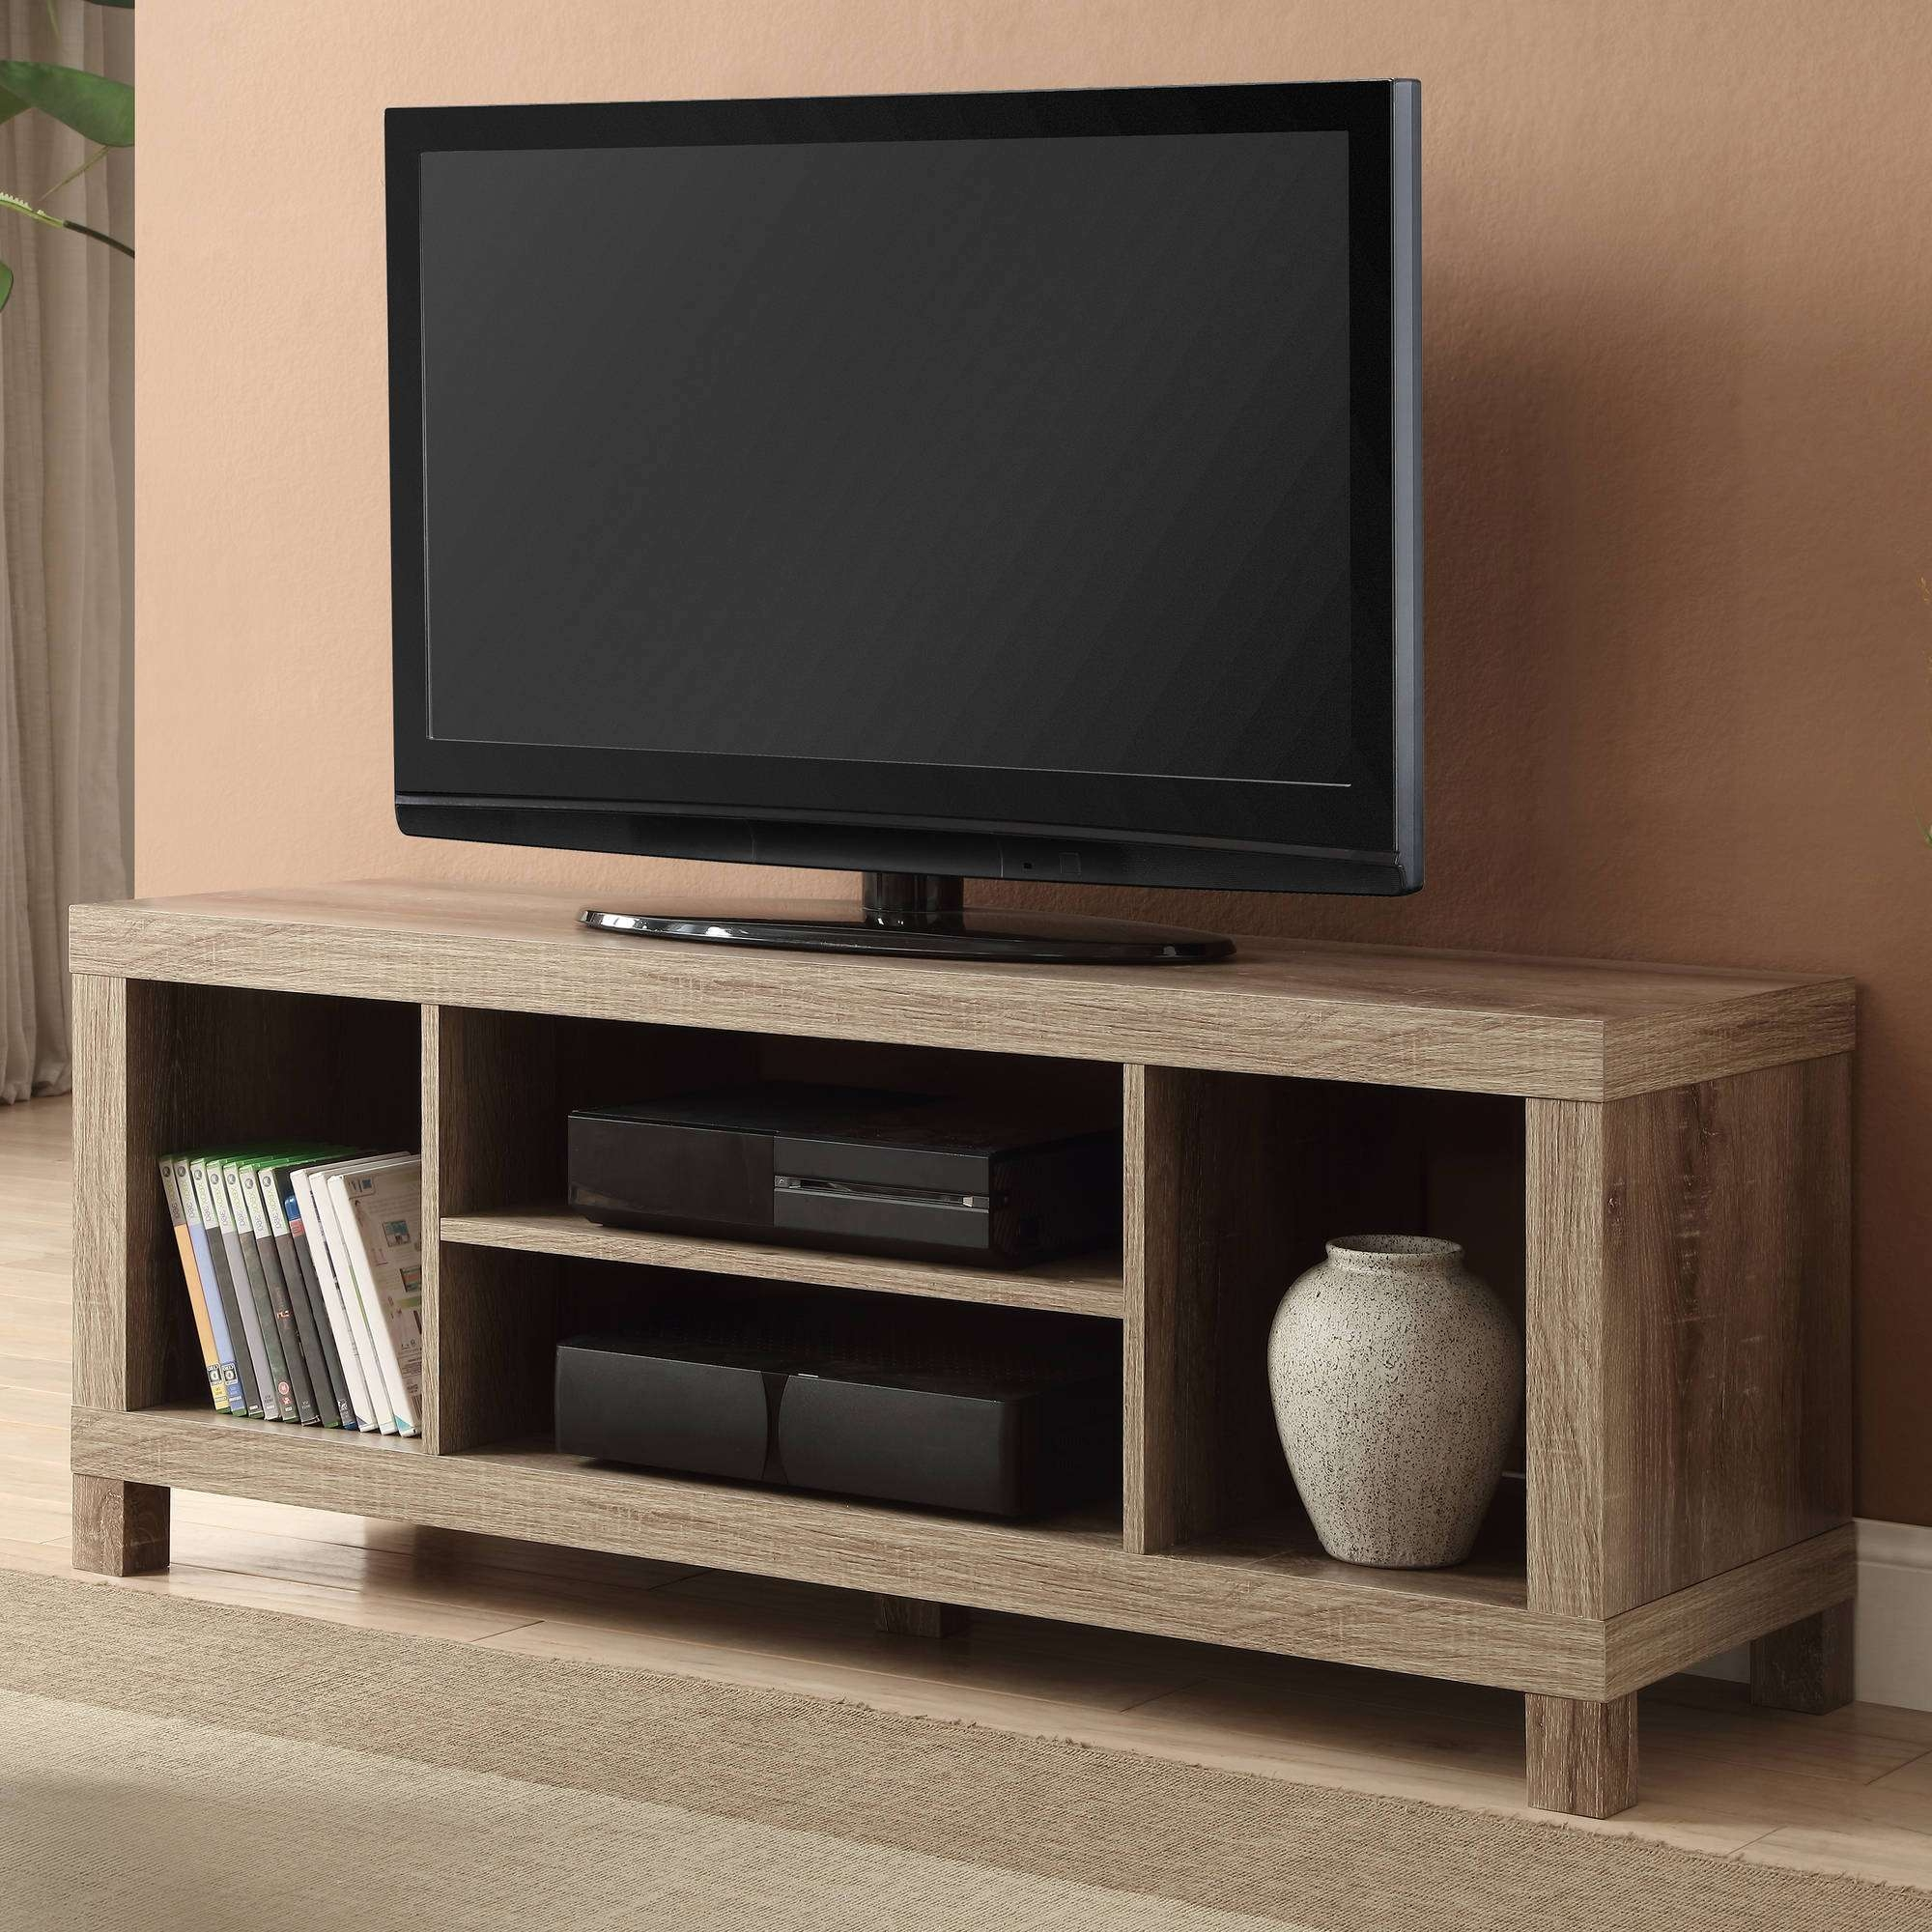 "Black Oak Tv Stand For Tvs Up To 42"" – Walmart Within Tv Stands For Small Rooms (View 4 of 15)"